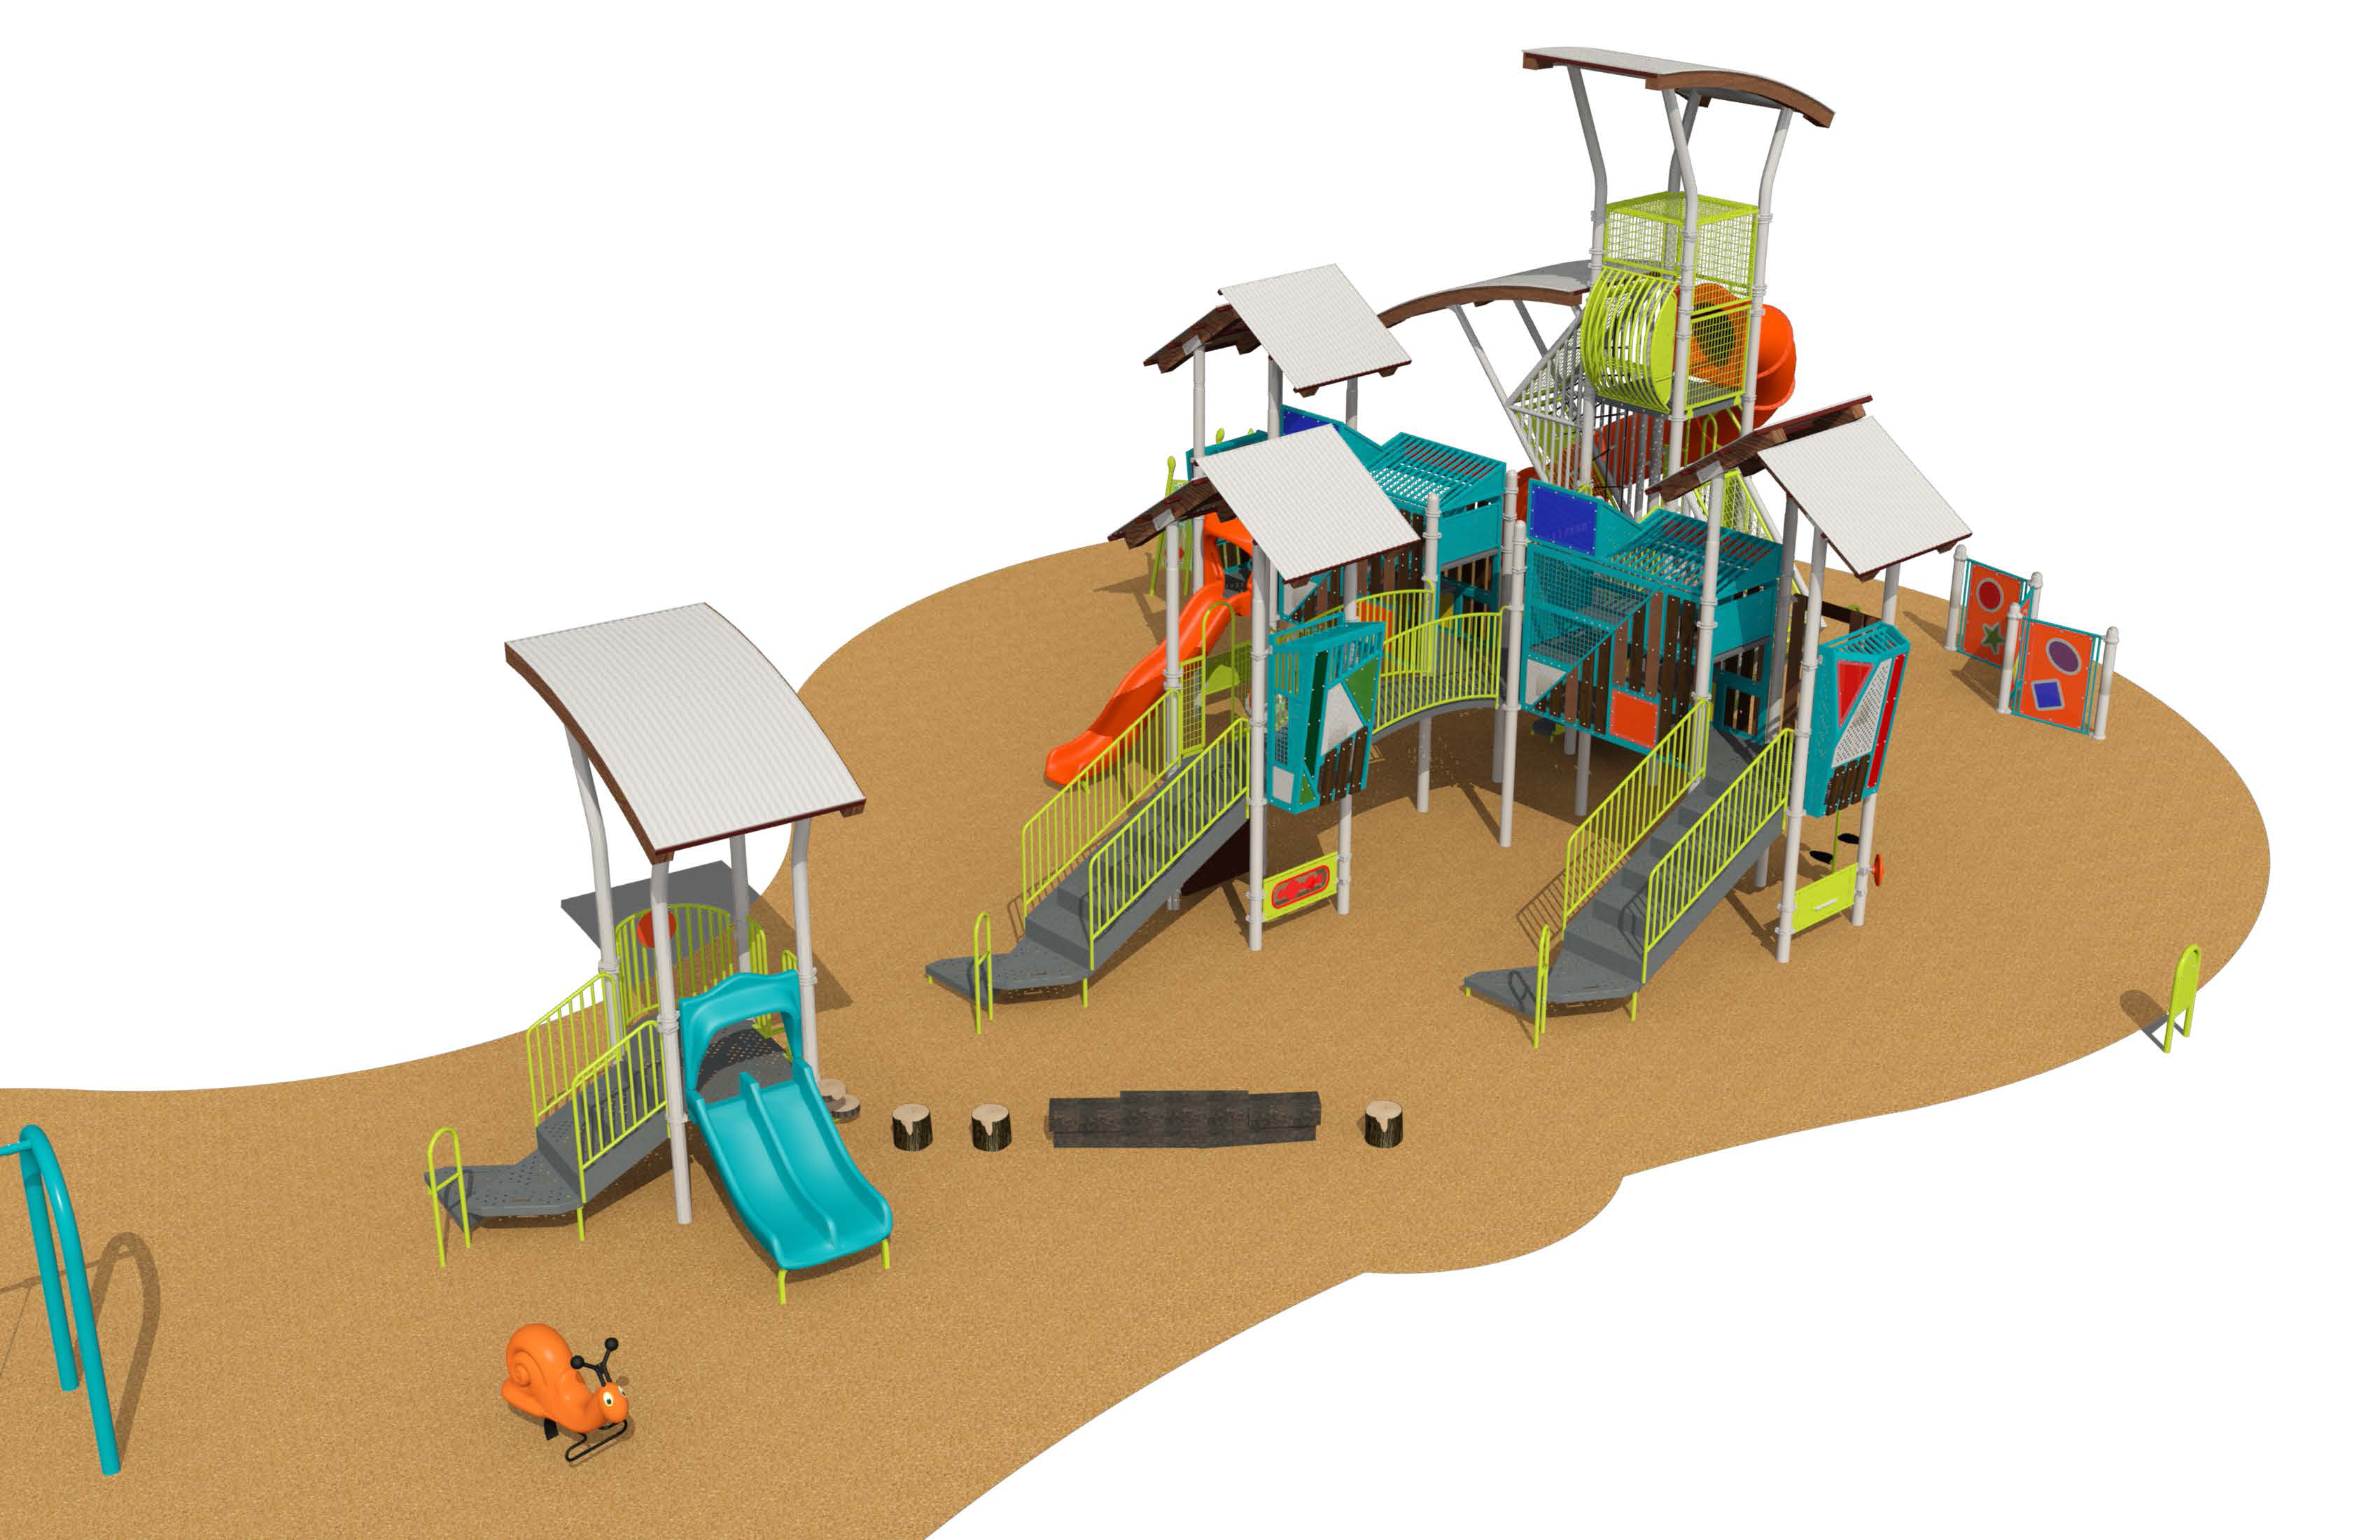 A rendering of the playground equipment and design, described with text following the image.